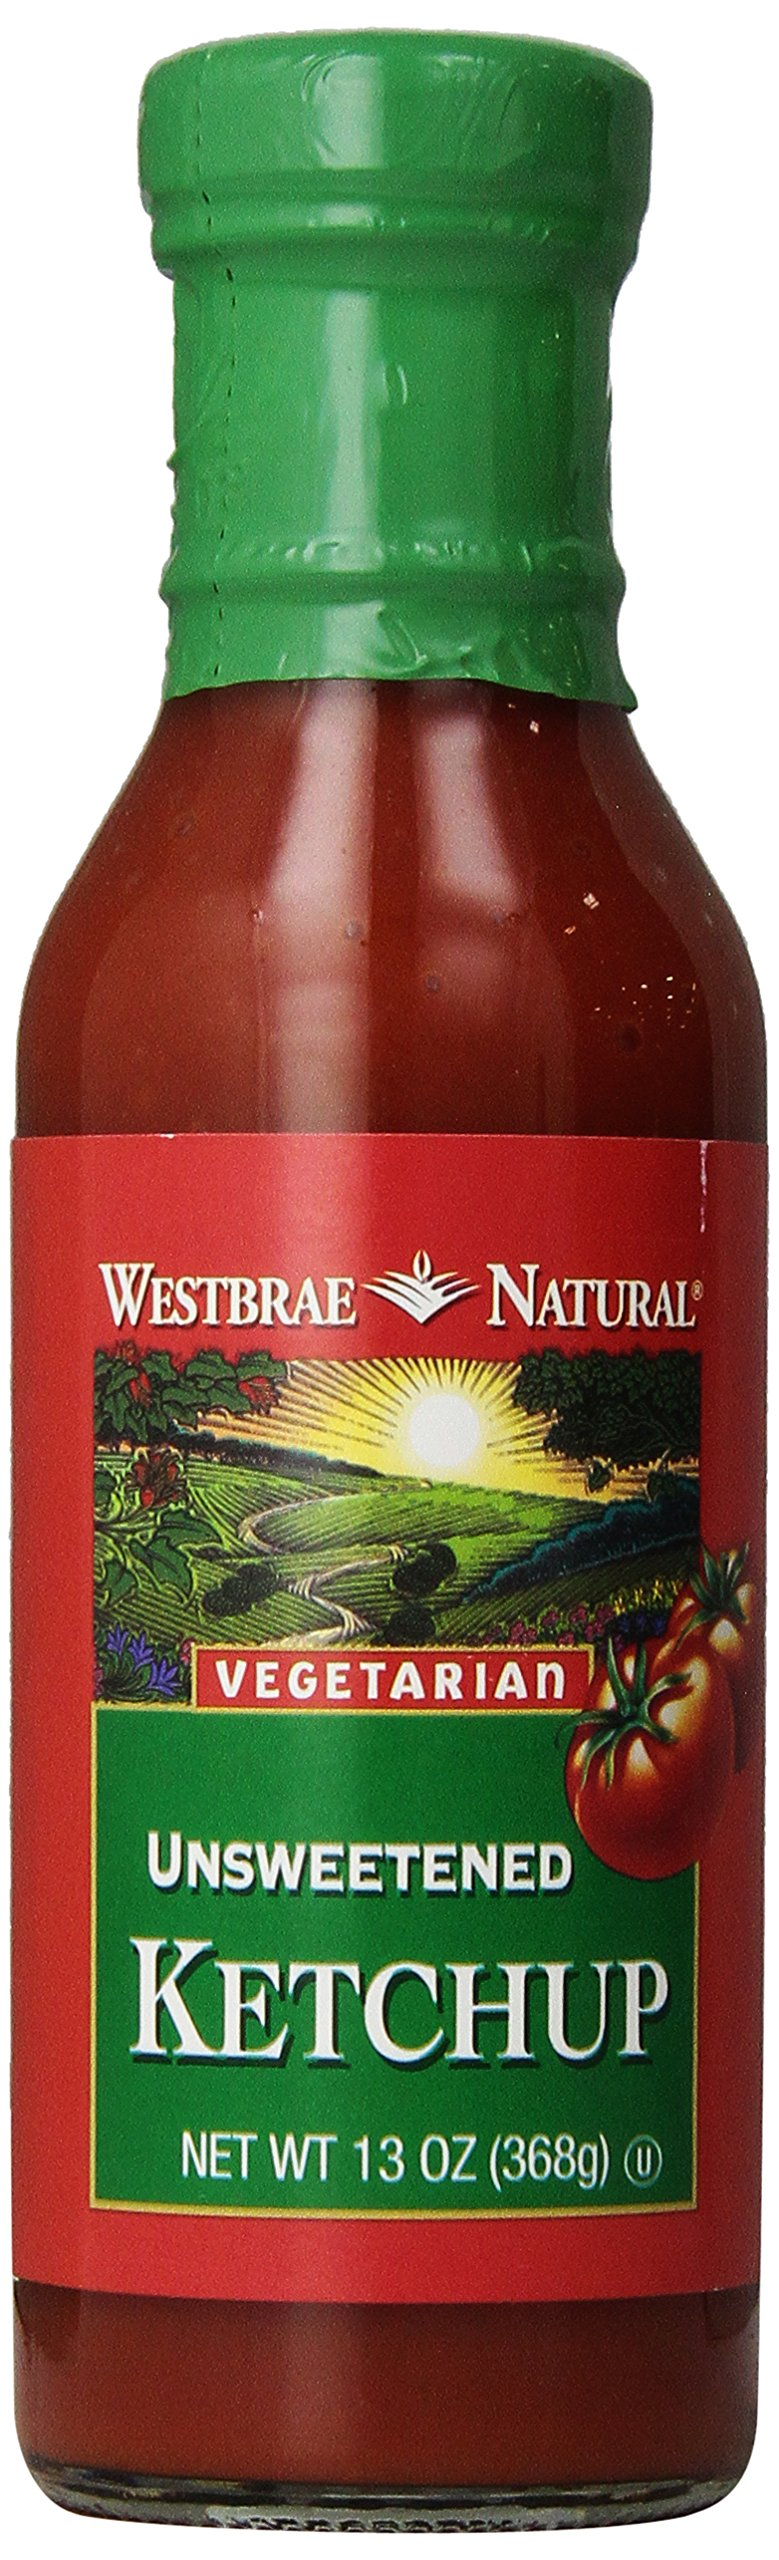 Westbrae Natural Vegetarian Ketchup, Unsweetened, One 13-Ounce Bottle